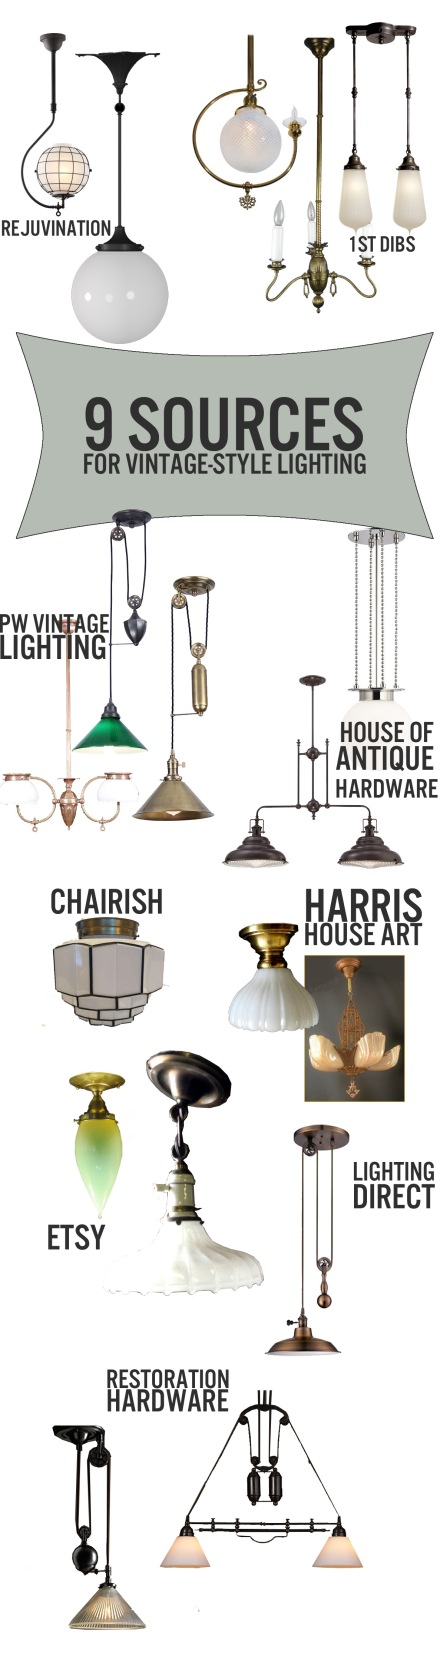 9 SOURCES FOR VINTAGE-STYLE LIGHTING | www.theanatomyofdesign.com